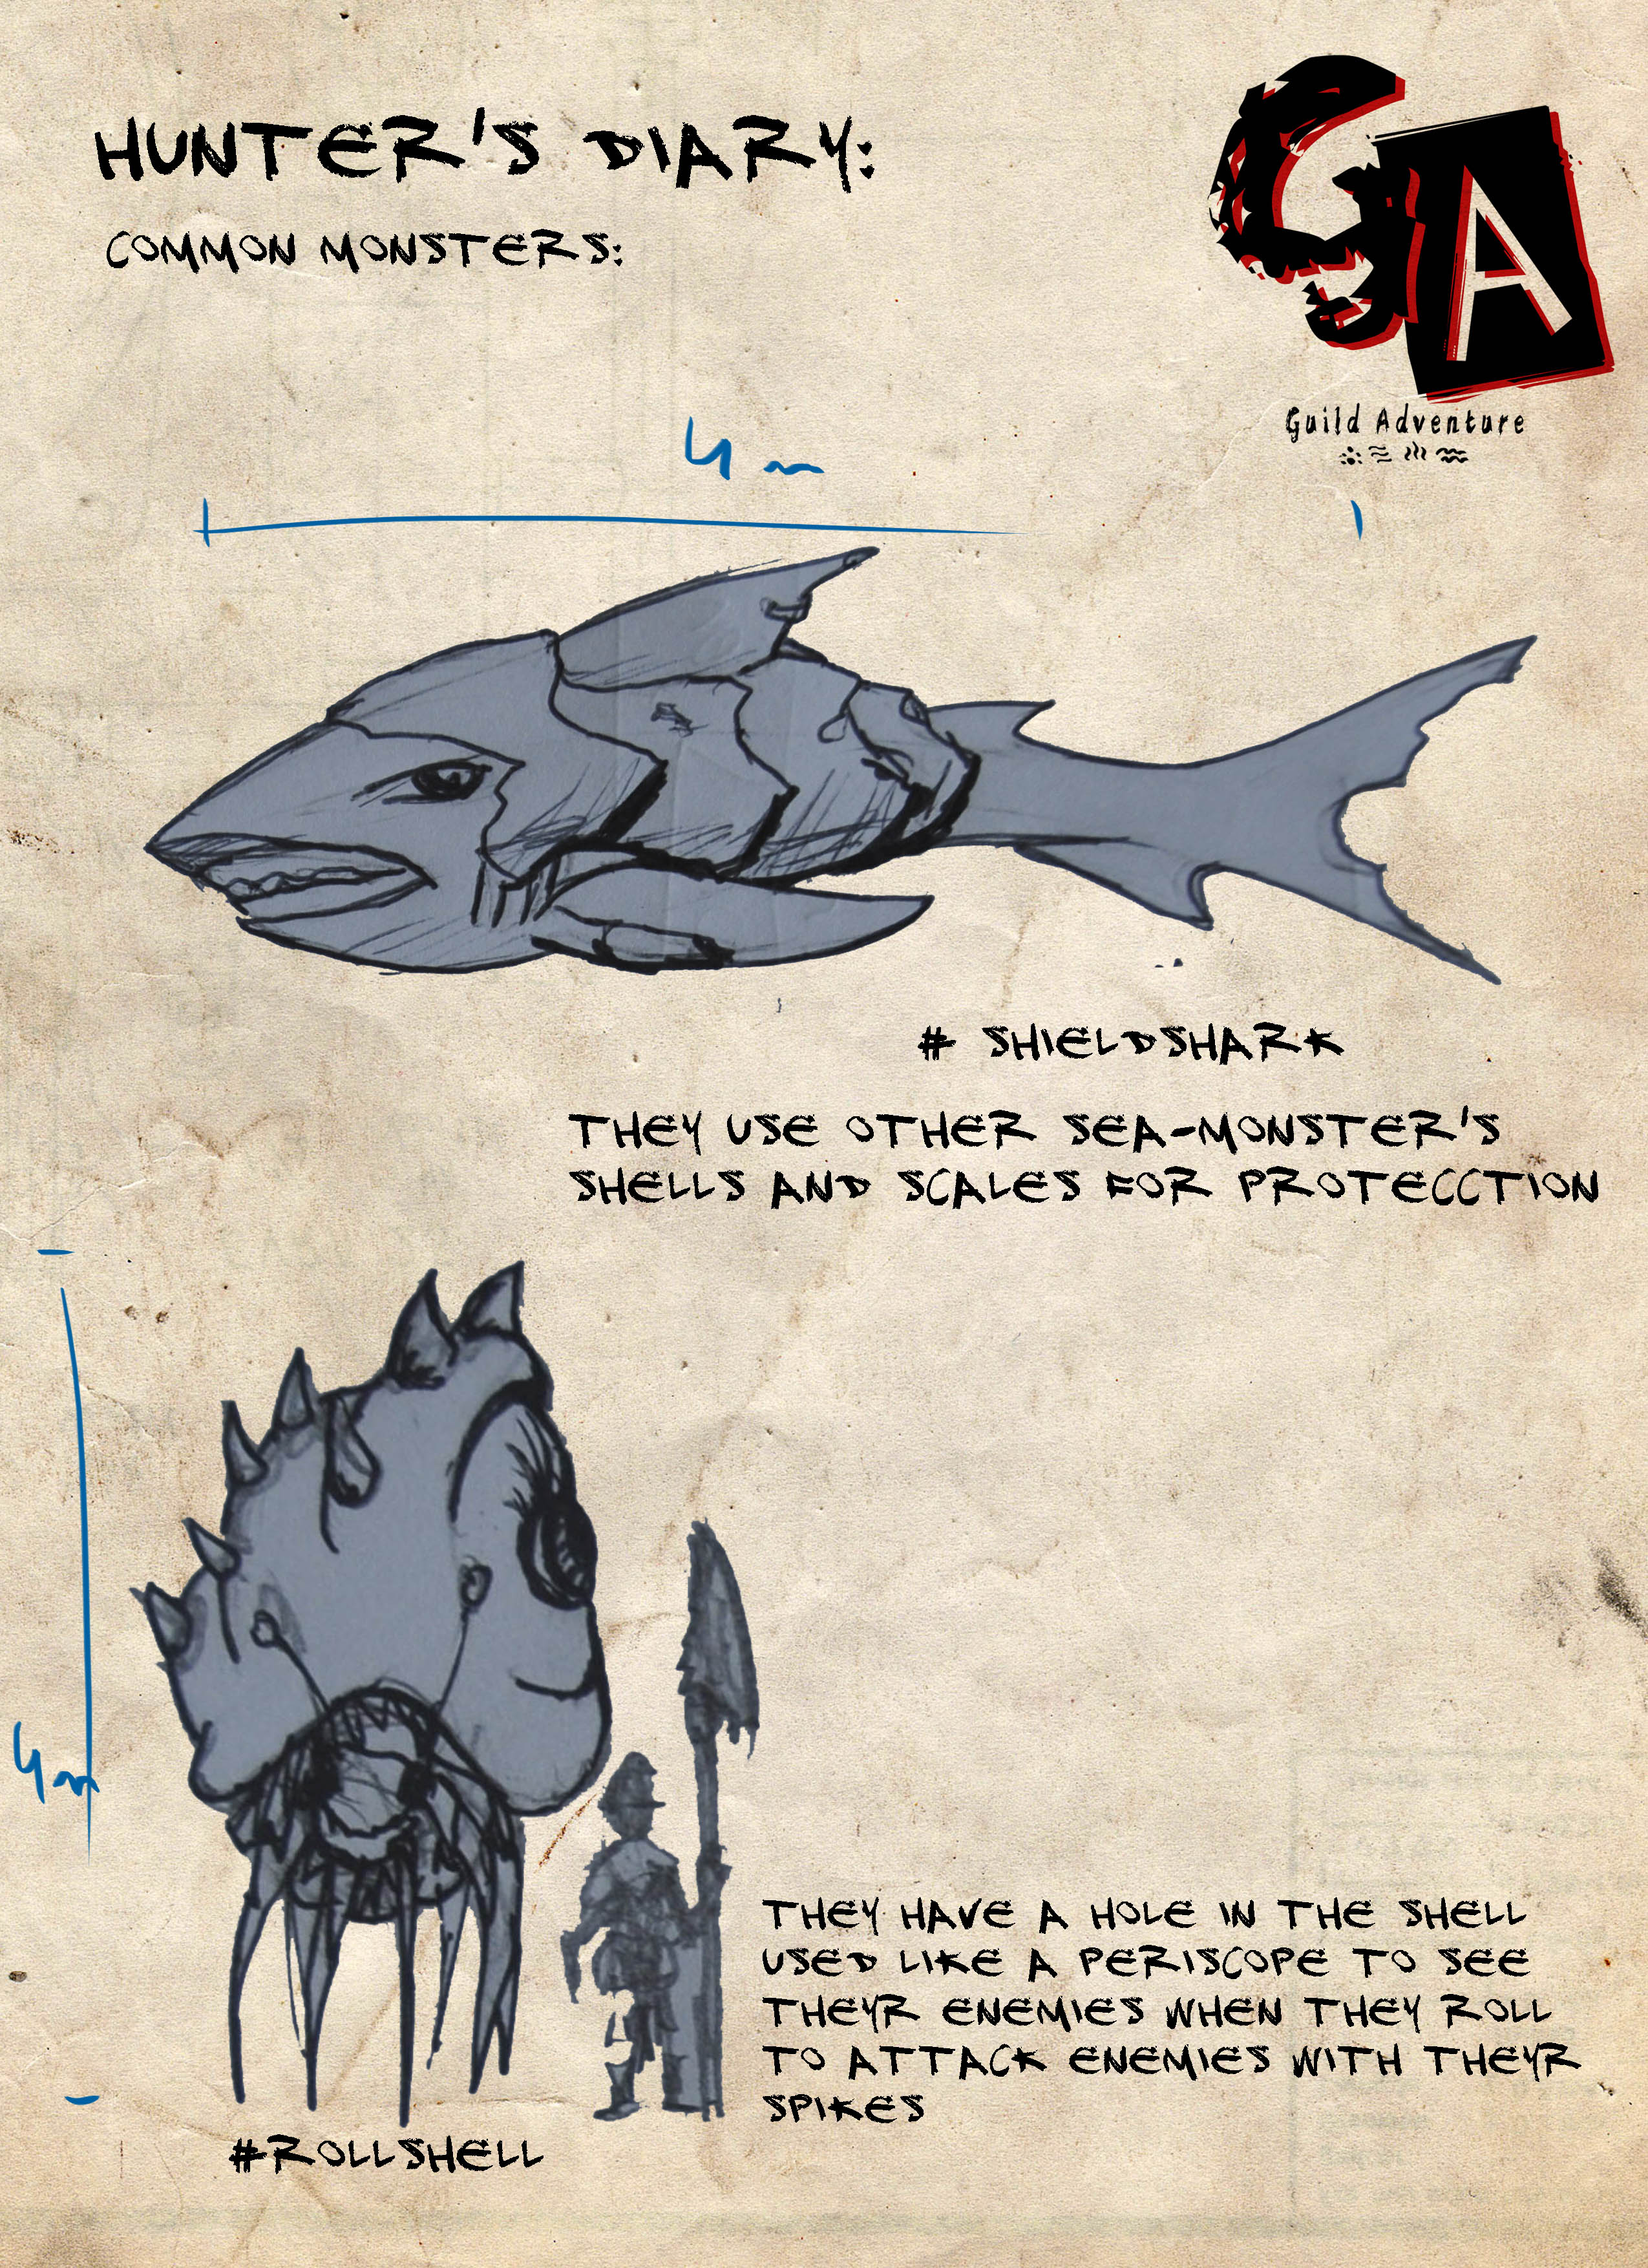 Hunter's diary: common monsters